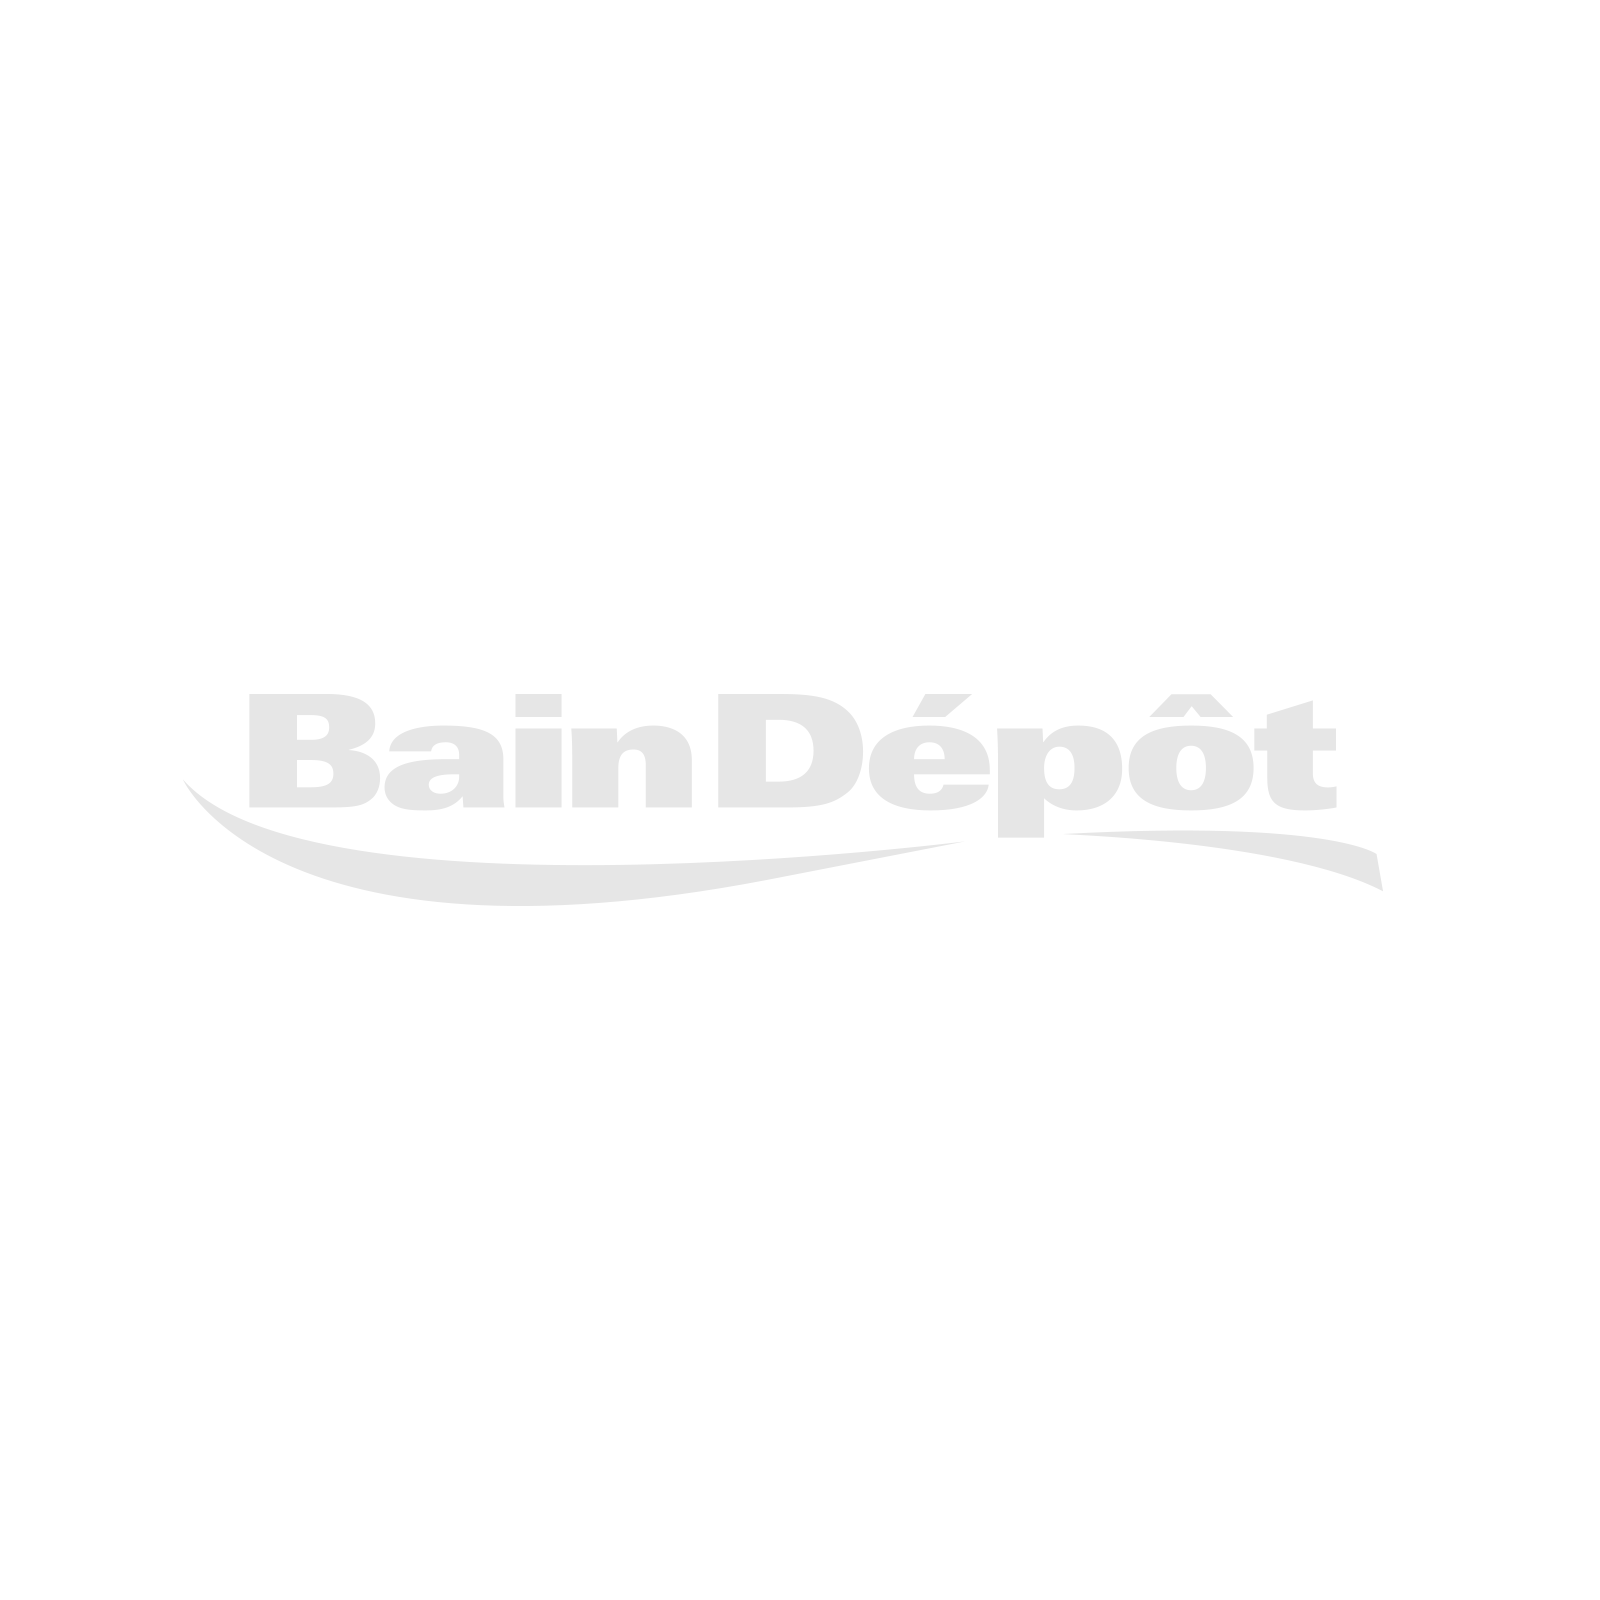 "Single undermount kitchen sink 30"" x 18"""